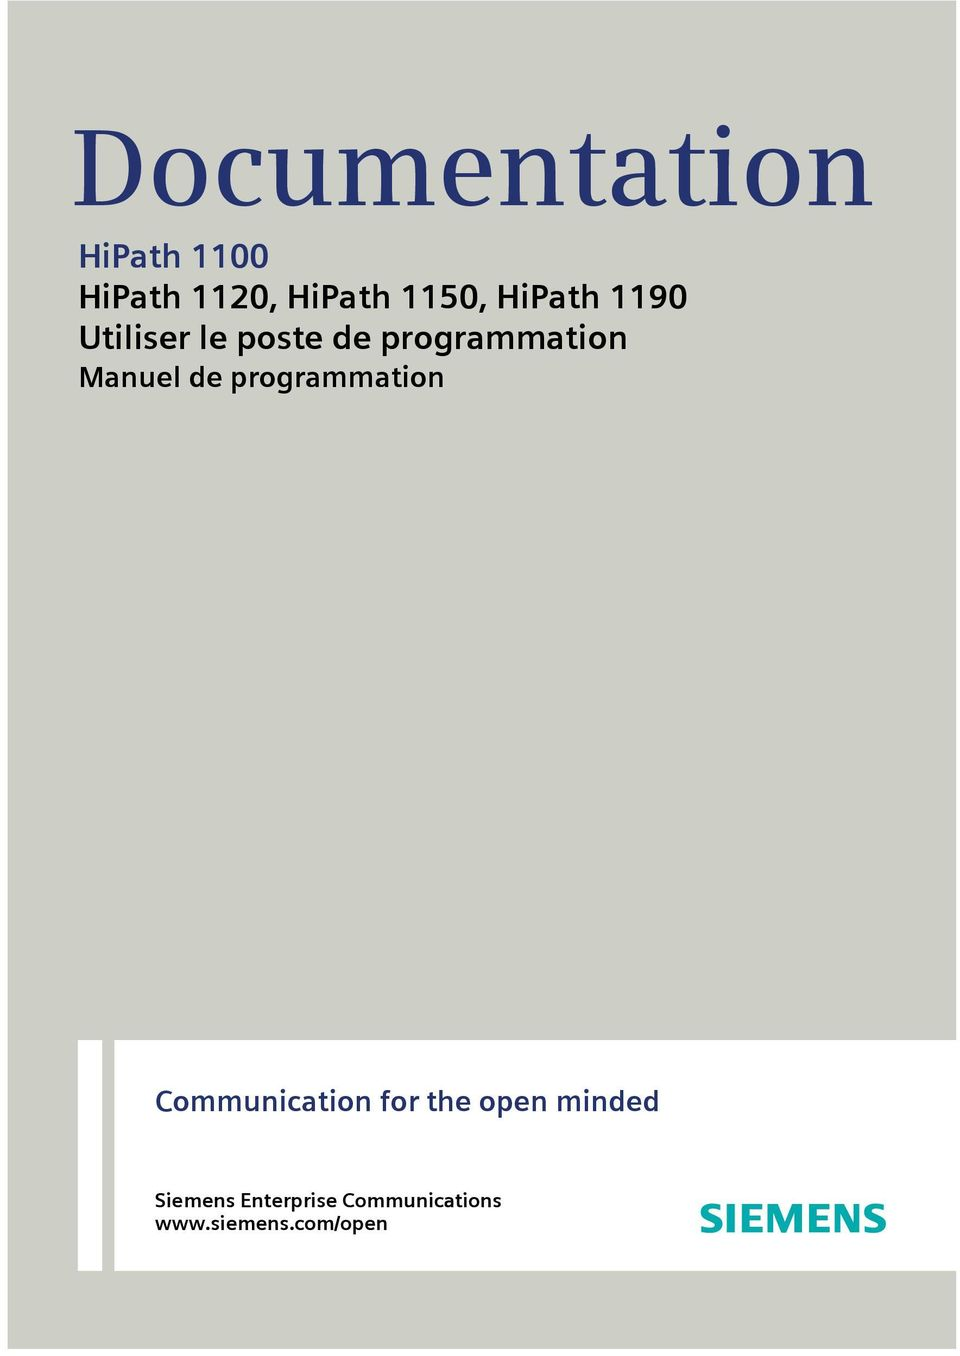 Manuel de programmation Communication for the open